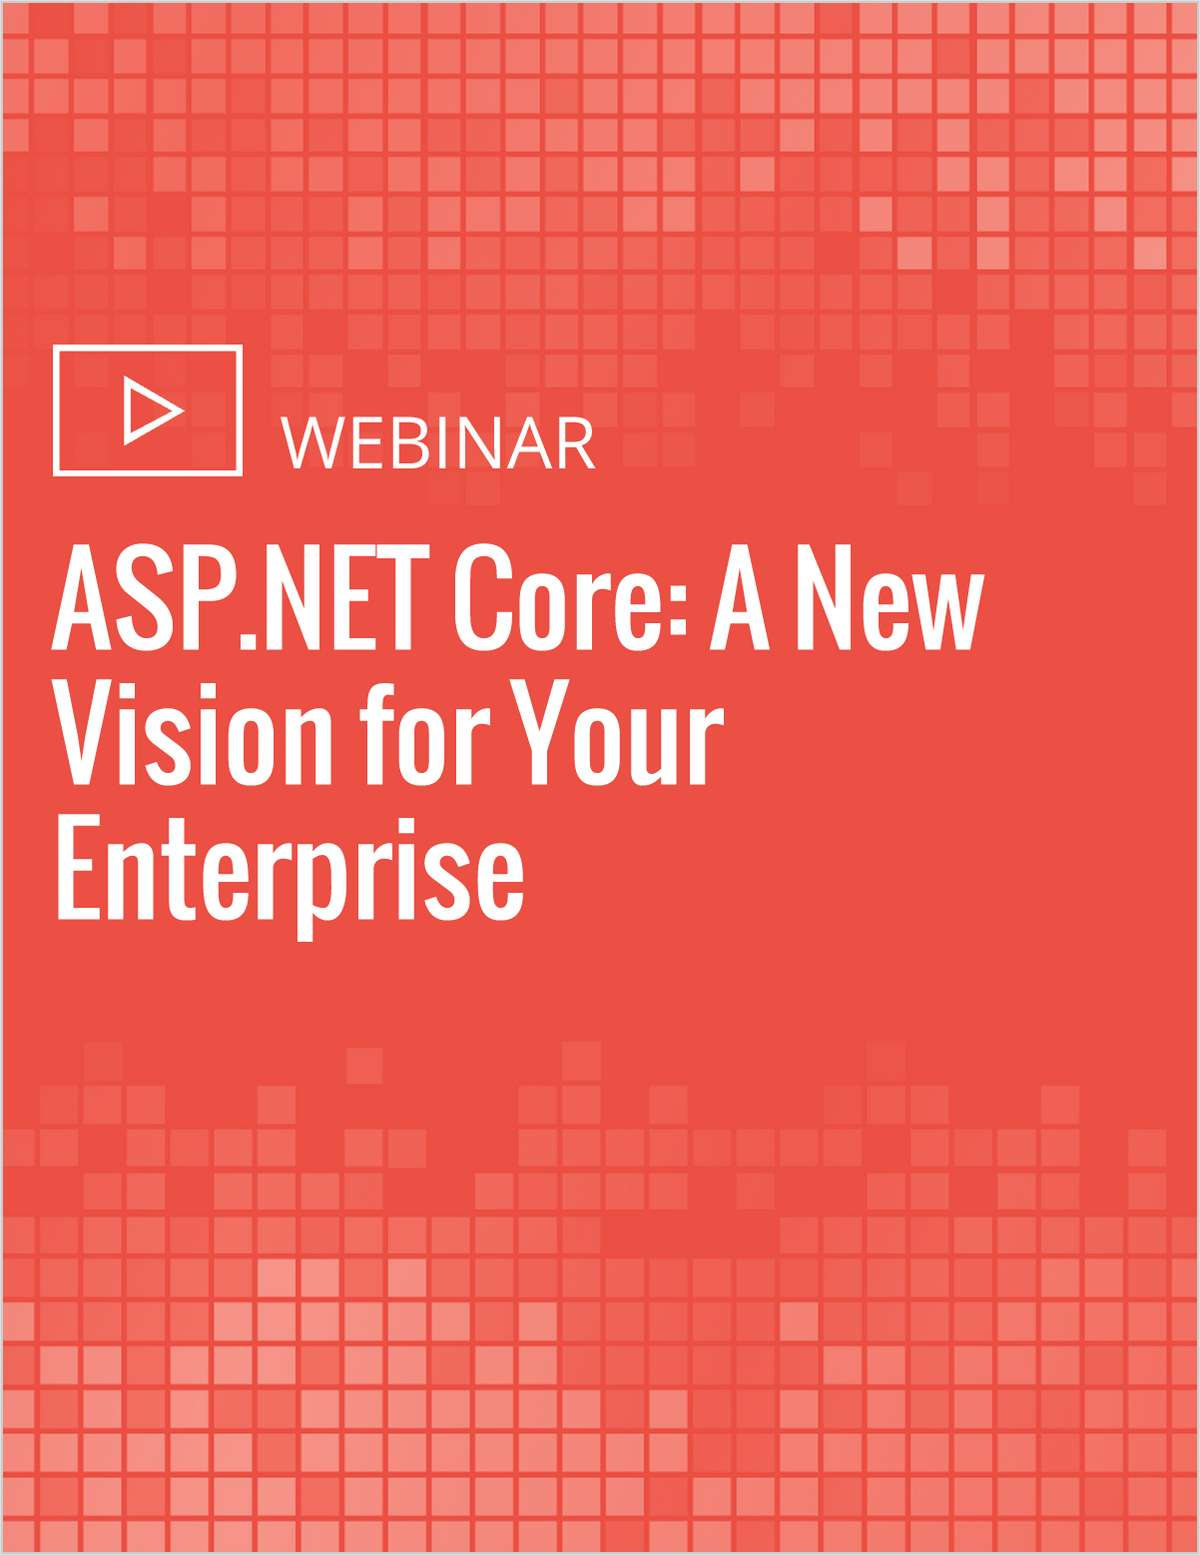 ASP.NET Core: A New Vision for Your Enterprise